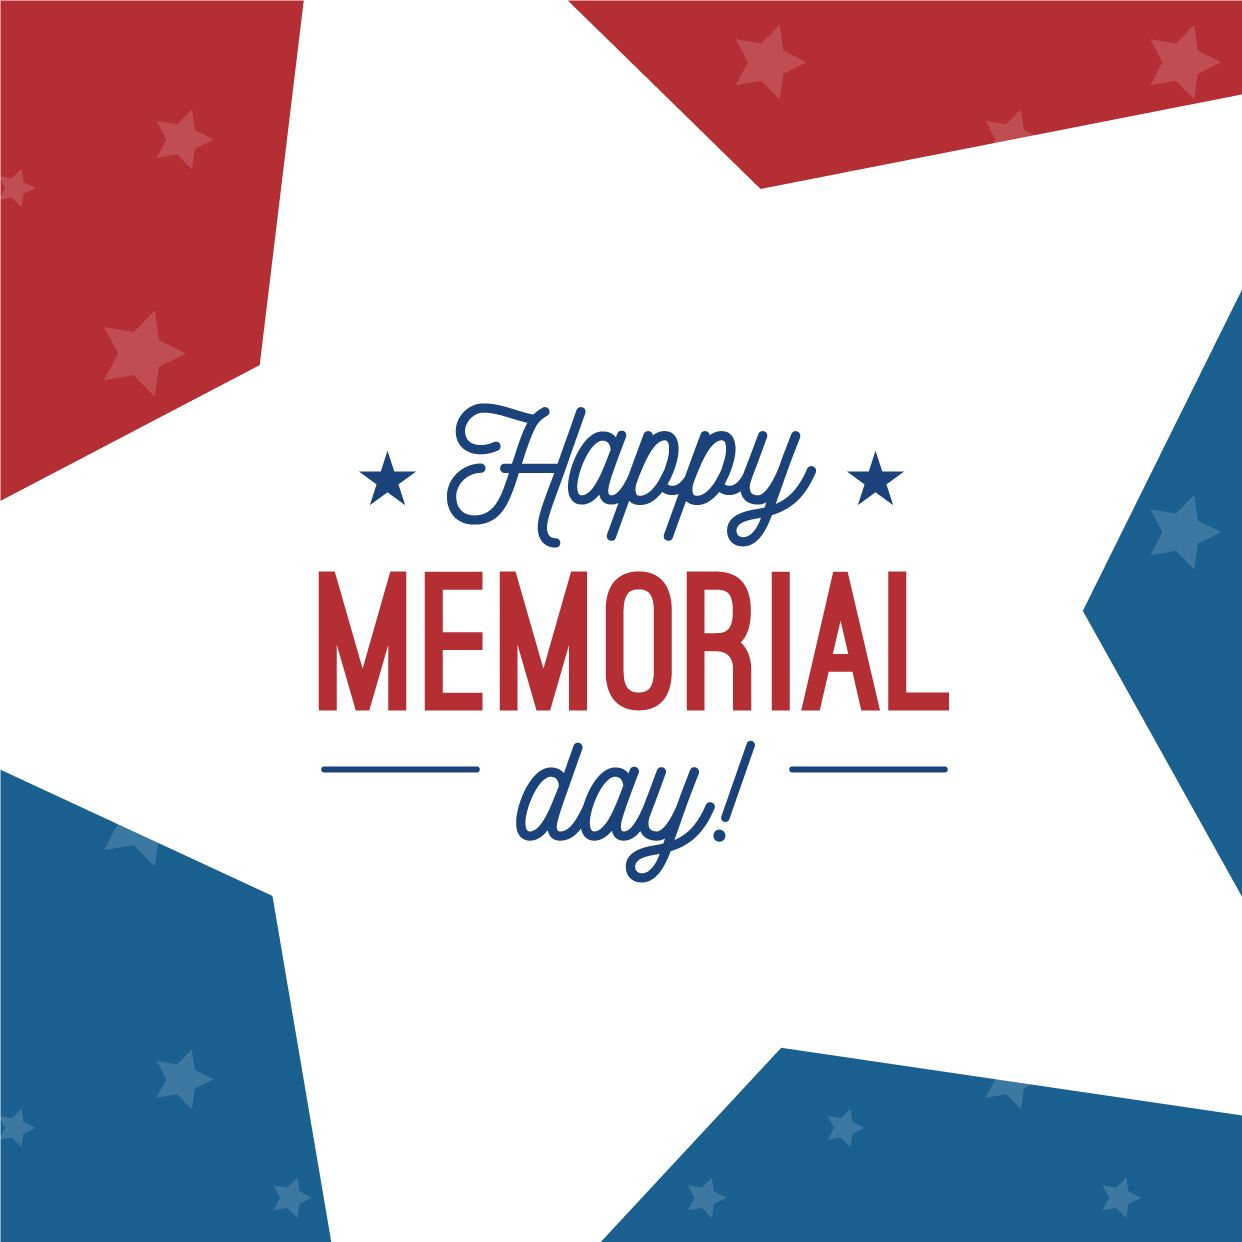 Happy Memorial Day Did You Know That The Day For Honoring Fallen Us Soldiers Was Originally Called Decoration Day Happy Memorial Day Dental Posts Memorial Day